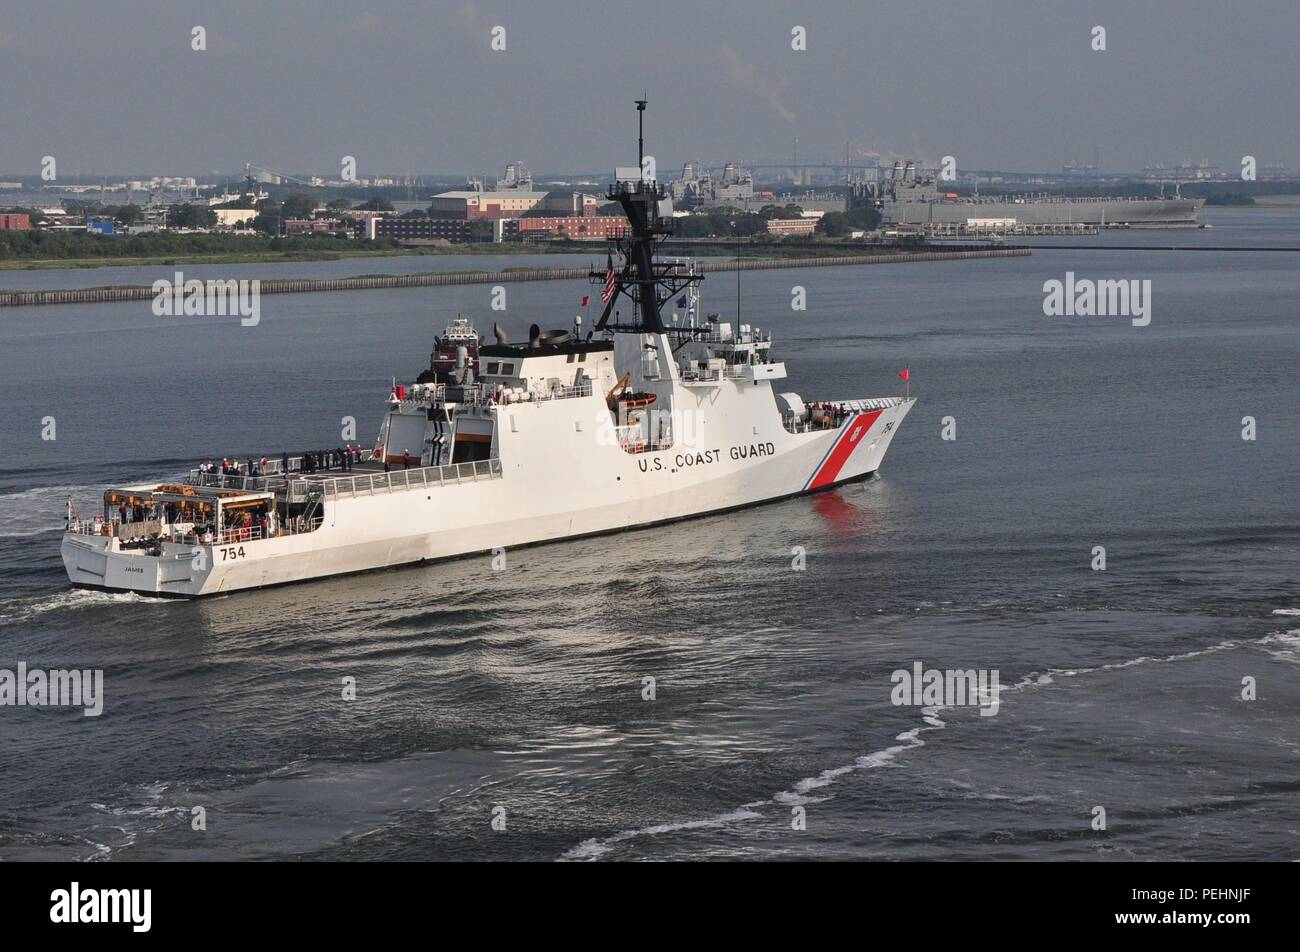 The U.S. Coast Guard Cutter James transits toward its homeport of Charleston, S.C., Aug. 28, 2015. The James is the fifth of eight planned National Security Cutters – the largest and most technologically advanced class of cutters in the Coast Guard's fleet. (U.S. Coast Guard photo by Petty Officer 1st Class Melissa Leake) - Stock Image